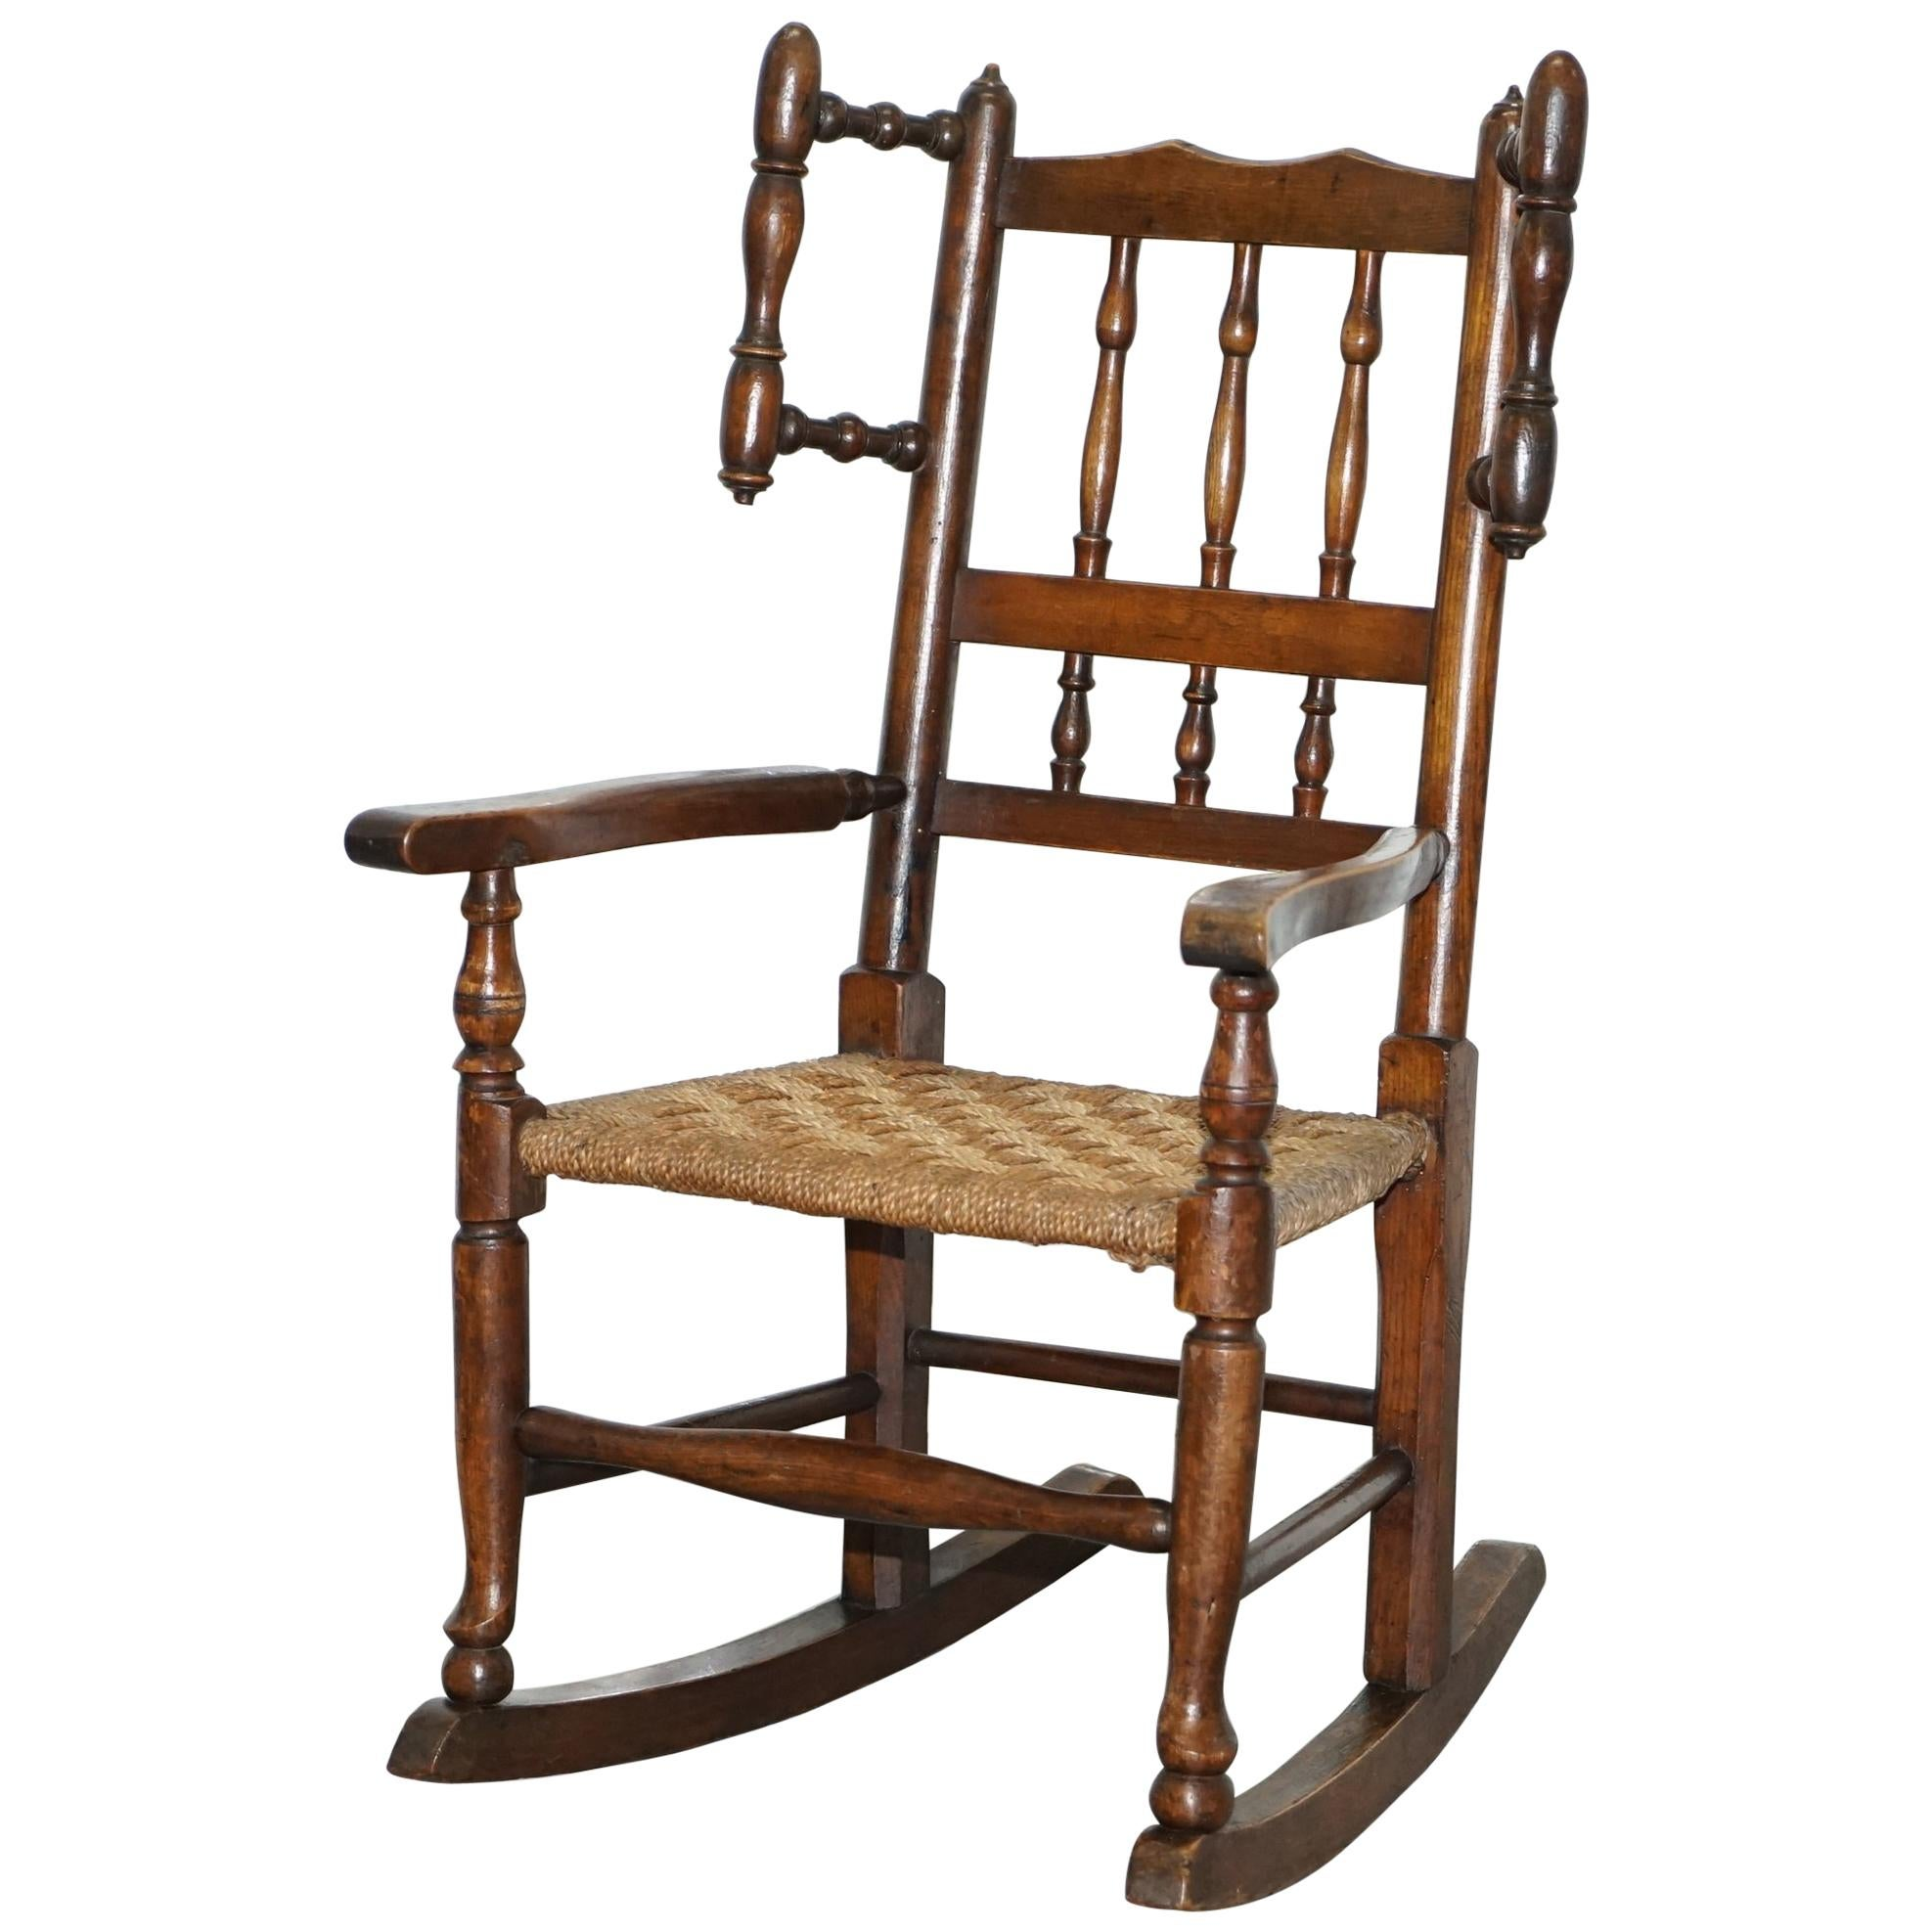 Cheap Rocking Chairs Rare Antique Rocking Chair For Children American Rocker For Child Or Toy Bear